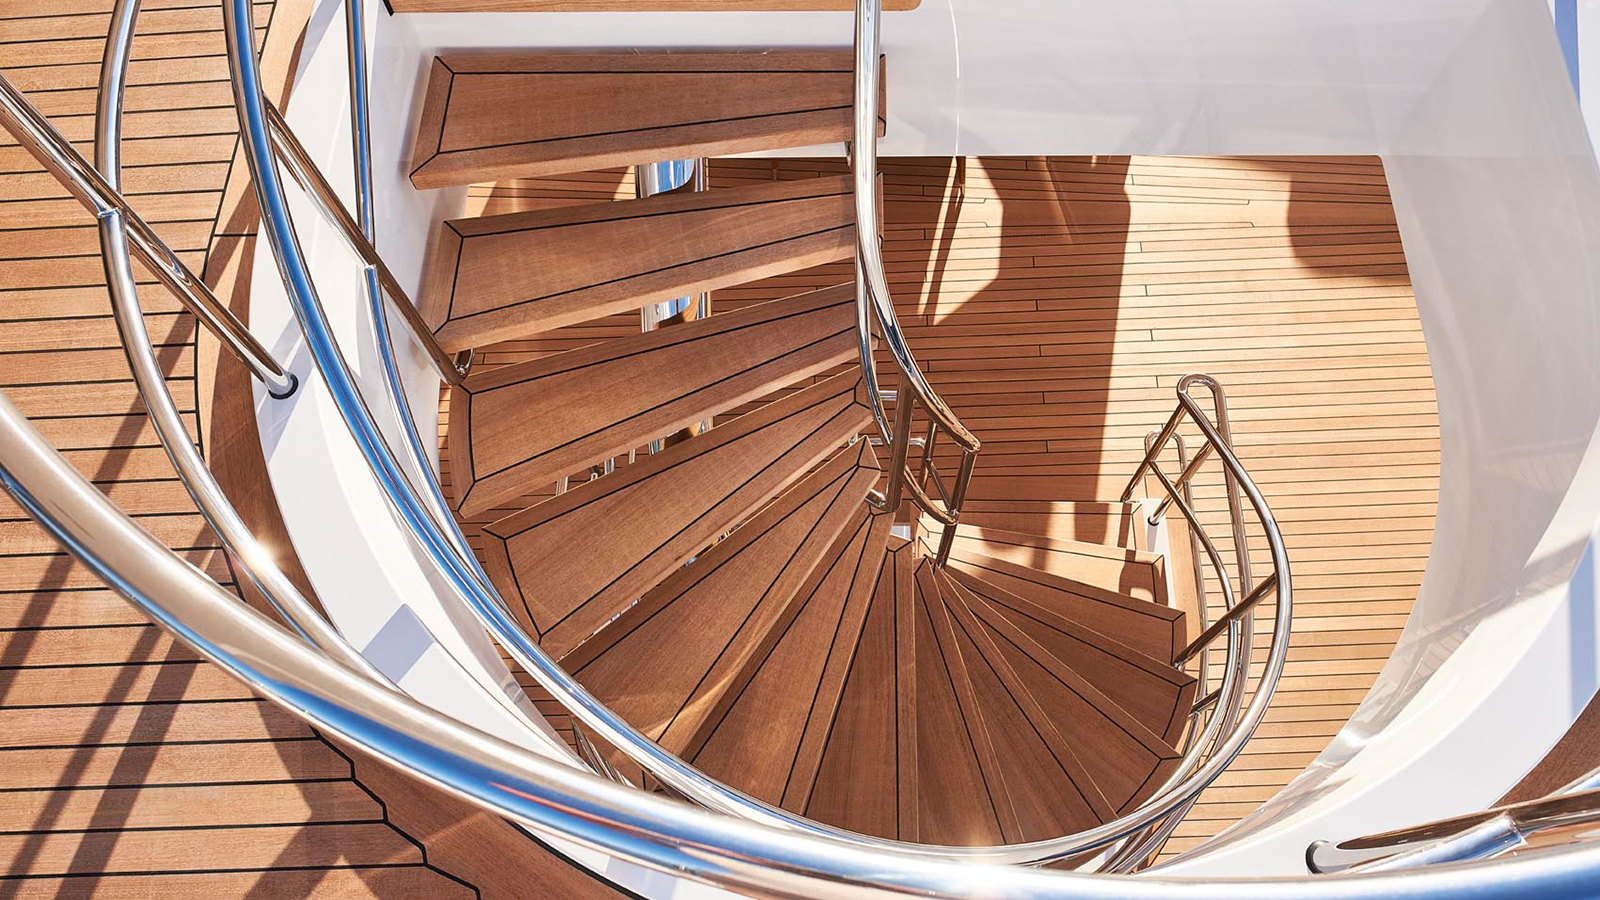 the-deck-stairs-of-feadship-super-yacht-joy